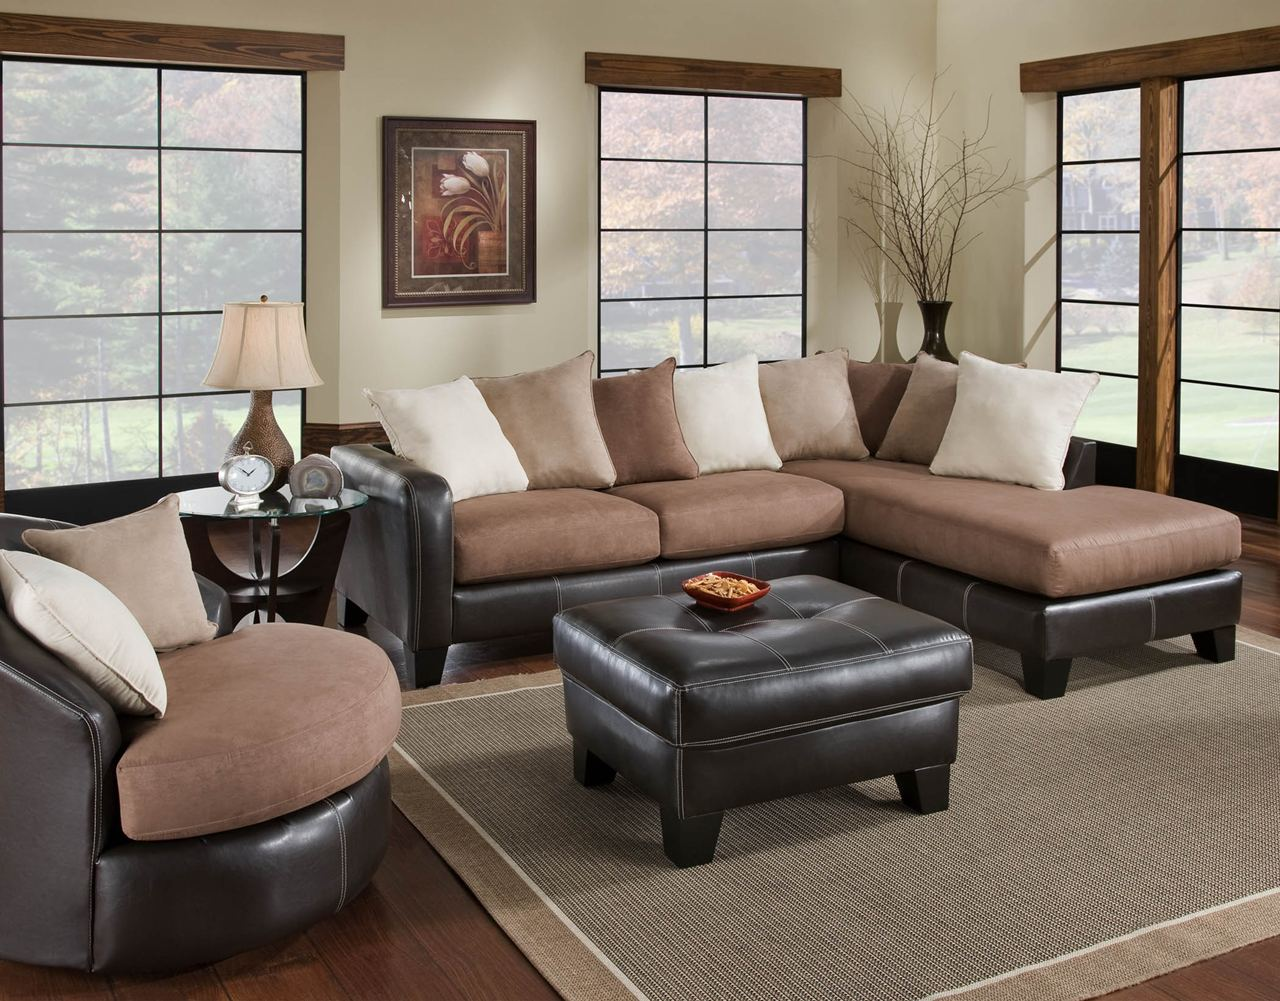 Ava Furniture Houston Cheap Discount Living Room Set 360 MOCHA 2 Pc Sectio